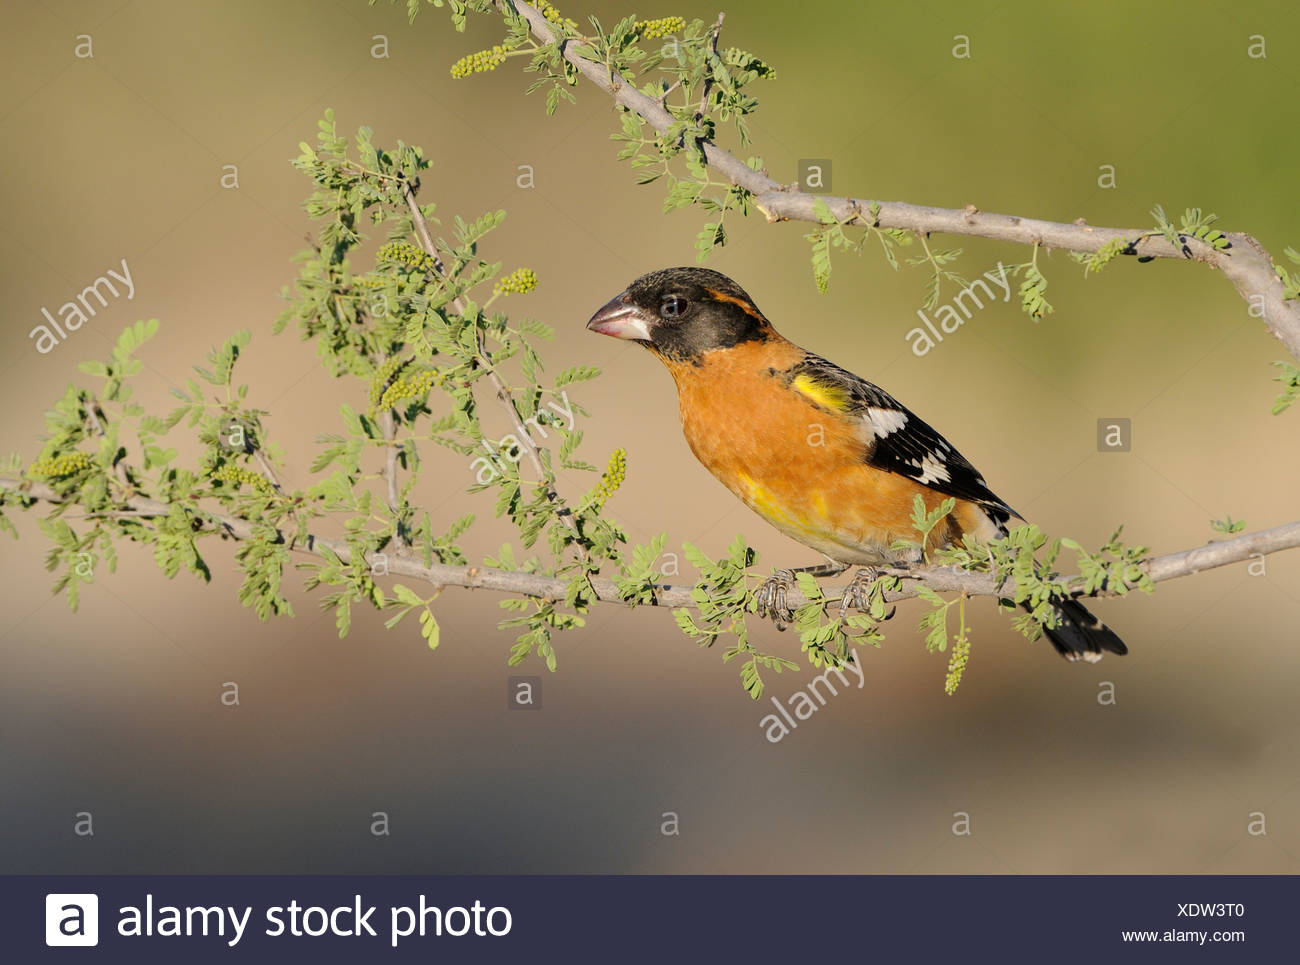 Male Black-headed Grosbeak (Pheucticus melanocephalus) at Elephant Head Pond, Green Valley, Arizona, USA - Stock Image